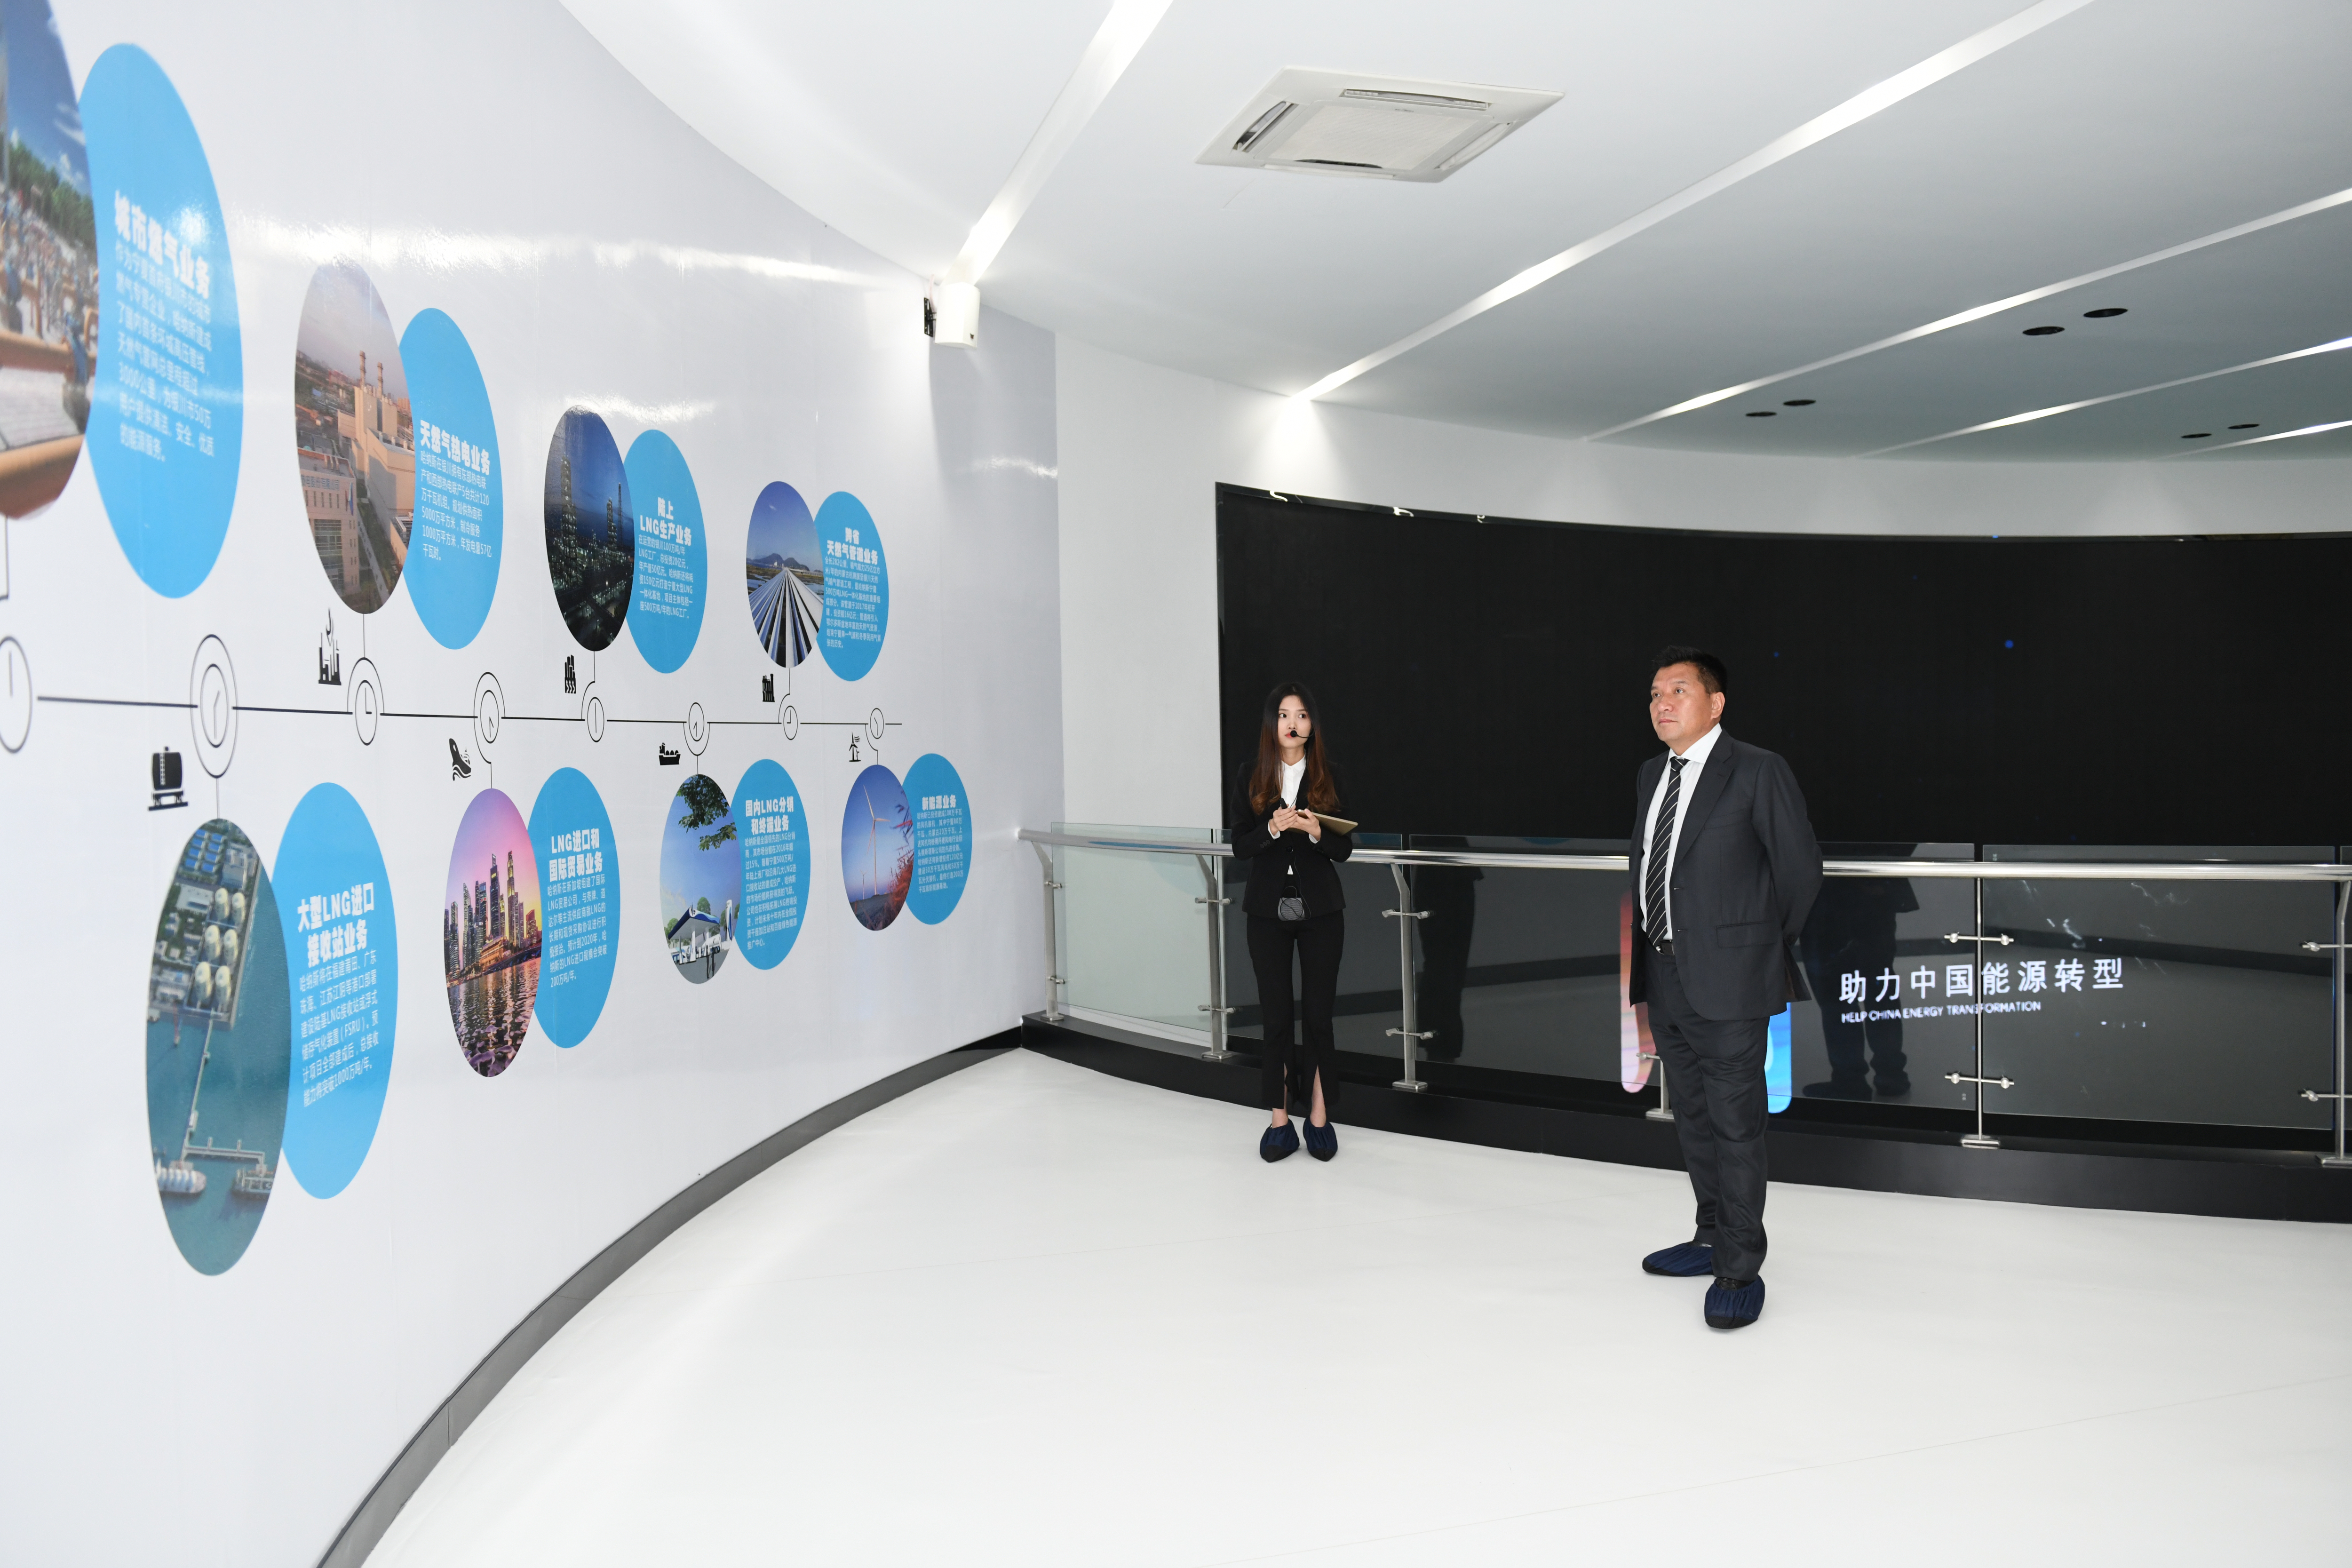 Ma Fuqiang, the Chairman of Hanas Group, and his entourage visited the Hans Putian LNG receiving station project